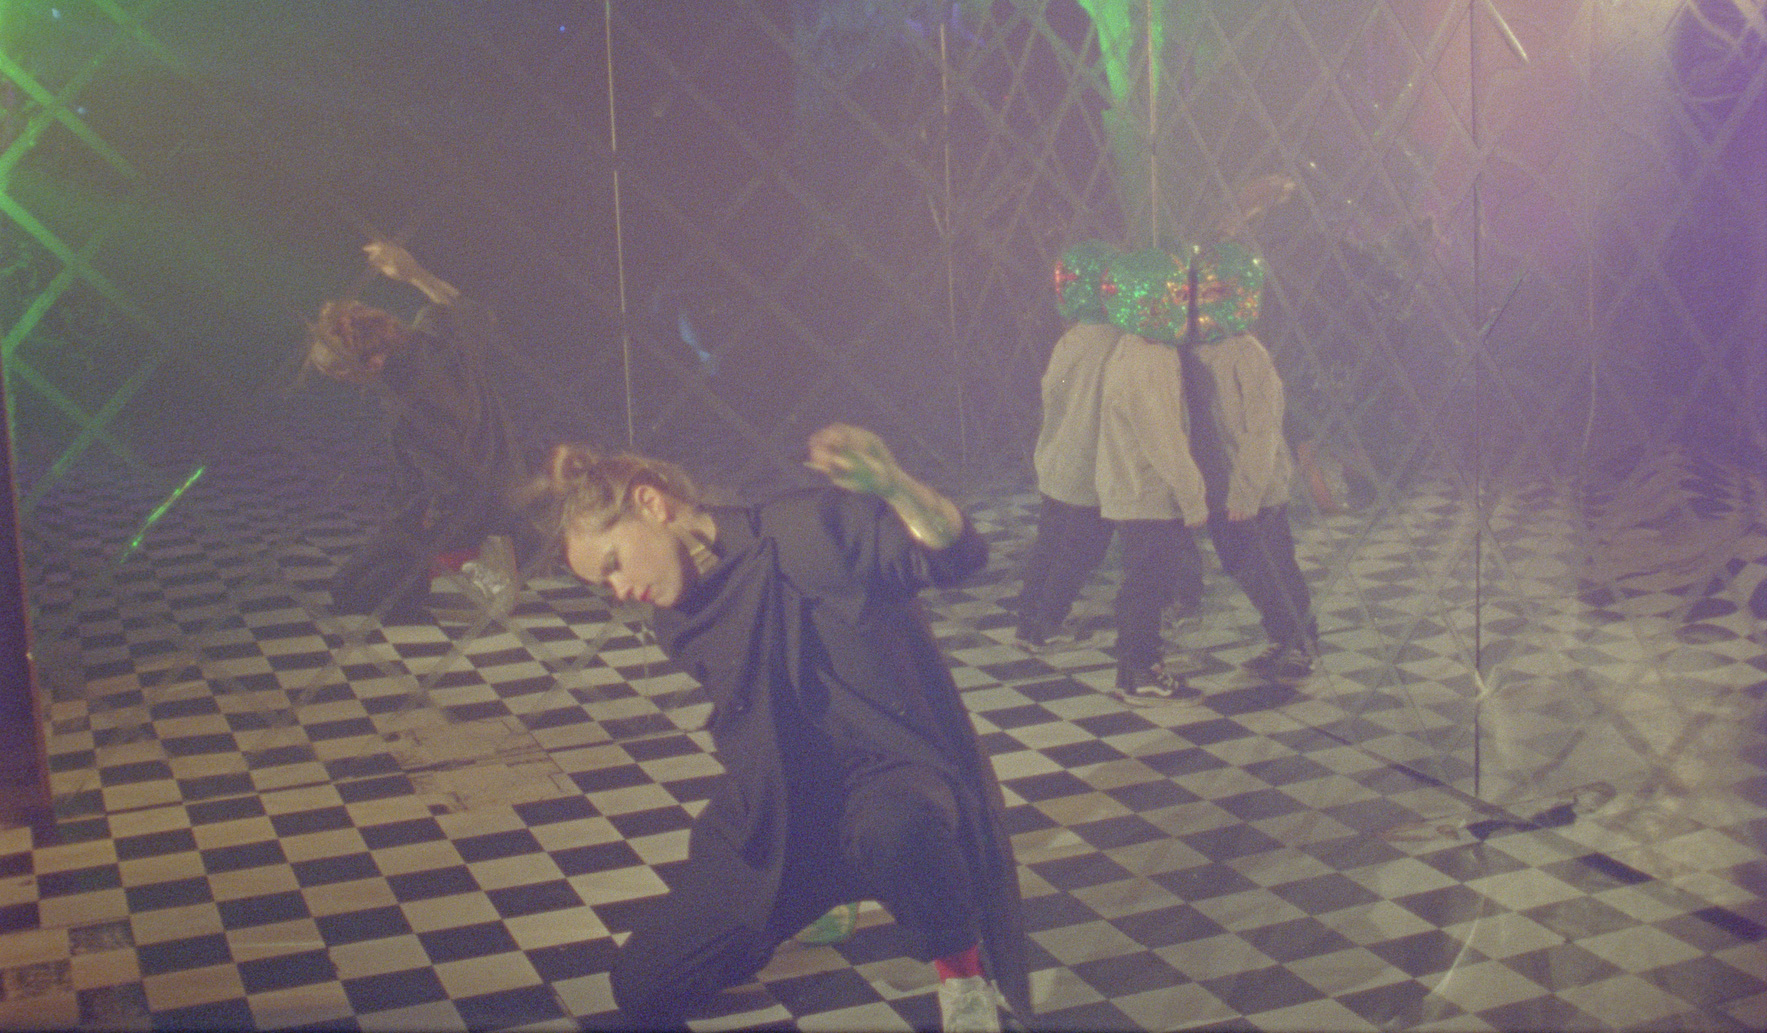 Interior shot of a nightclub with black and white floor, and mirrored walls. A white-skinned woman with blonde hair tied up in a messy top-knot appears to breakdance on the floor. She is wearing a draped black two-piece, red socks and white sneakers. She wears red lipstick and metal jewellry. In the rear of the room, a small child pushes his whole body up against the mirror wall. He is wearing an oversize green sequined Lucha libre mask, a grey sweater, black trousers and dark sneakers. A disco ball refracts blue, purple and green light all over the dancefloor.